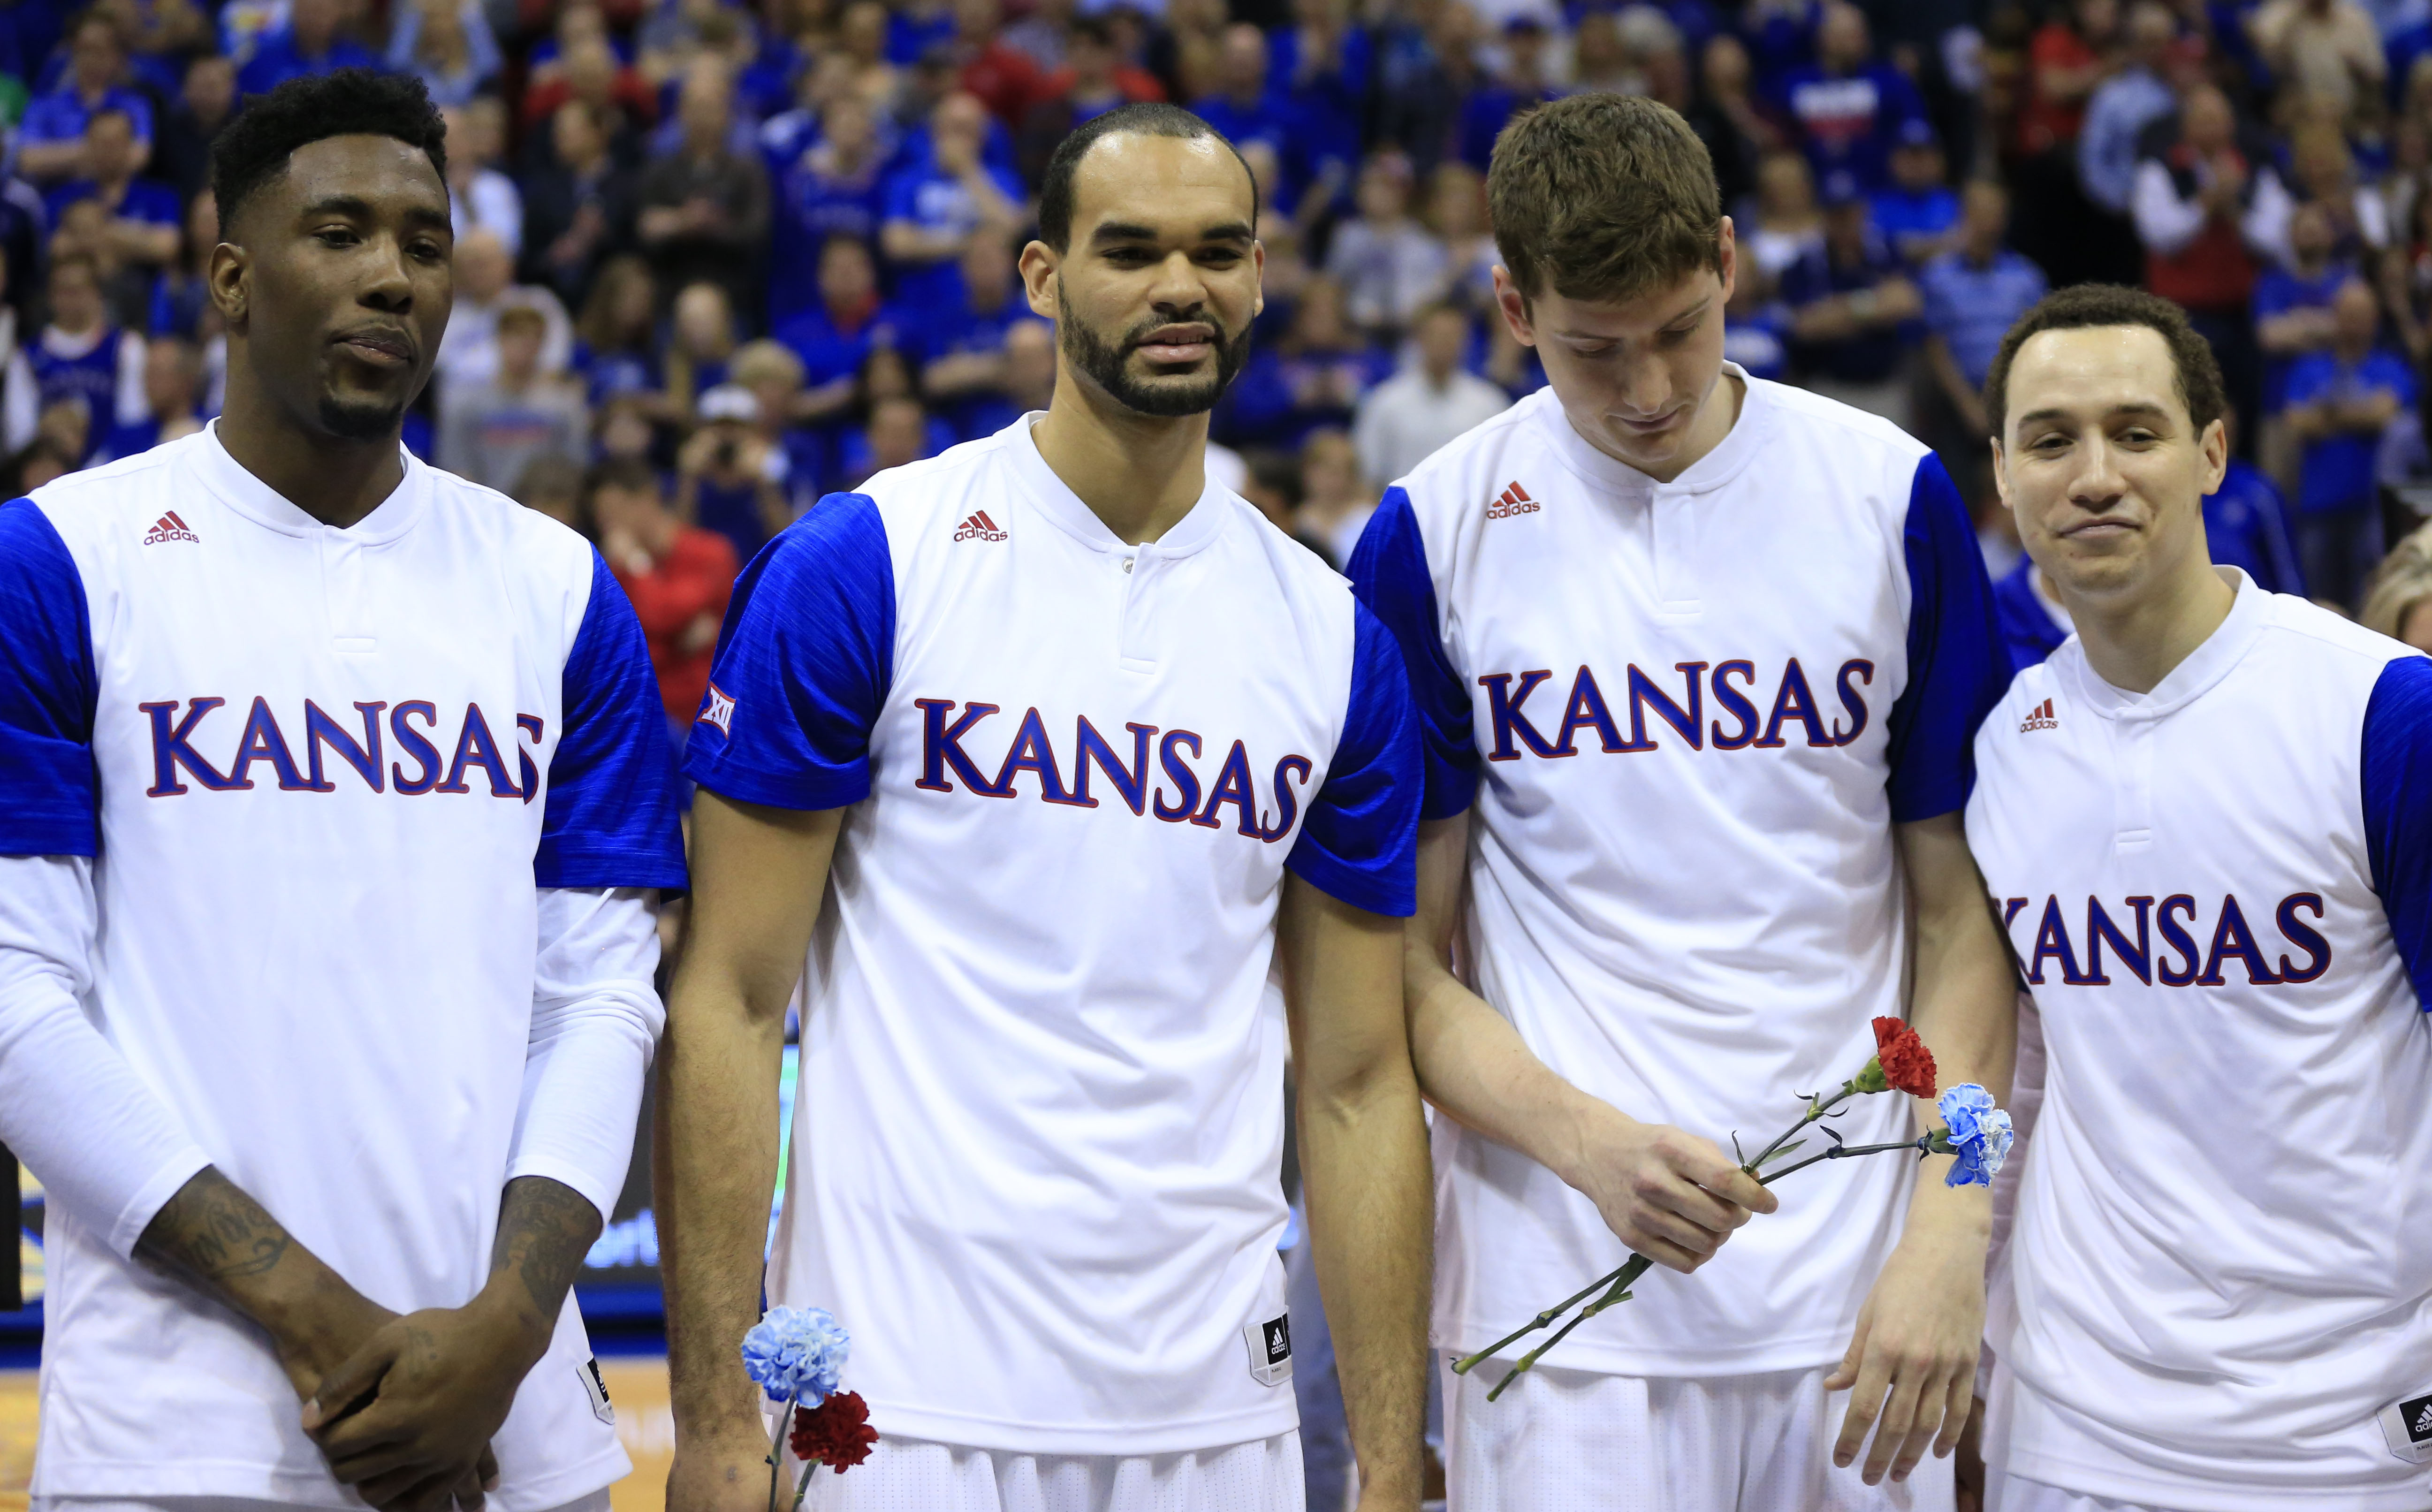 Kansas seniors, from left, Jamari Traylor, Perry Ellis, Hunter Mickelson and Evan Manning, right, pose for a photograph before an NCAA college basketball game against Iowa State in Lawrence, Kan., Saturday, March 5, 2016. (AP Photo/Orlin Wagner)